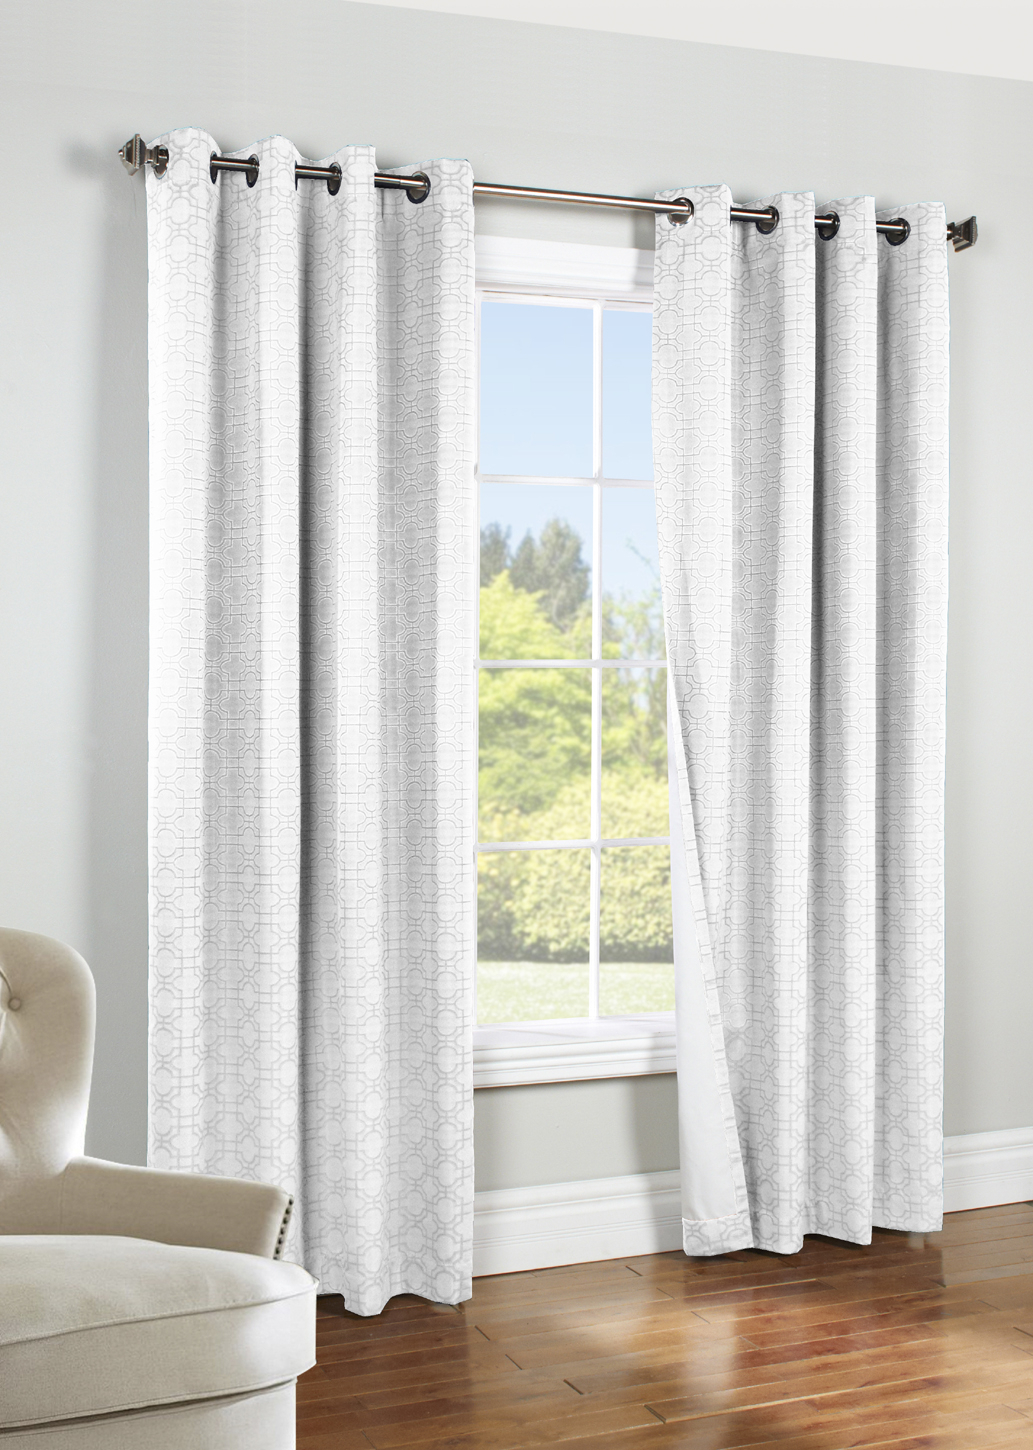 Black Out Curtains – Room Darkening Curtains Regarding Woven Blackout Curtain Panel Pairs With Grommet Top (View 24 of 30)